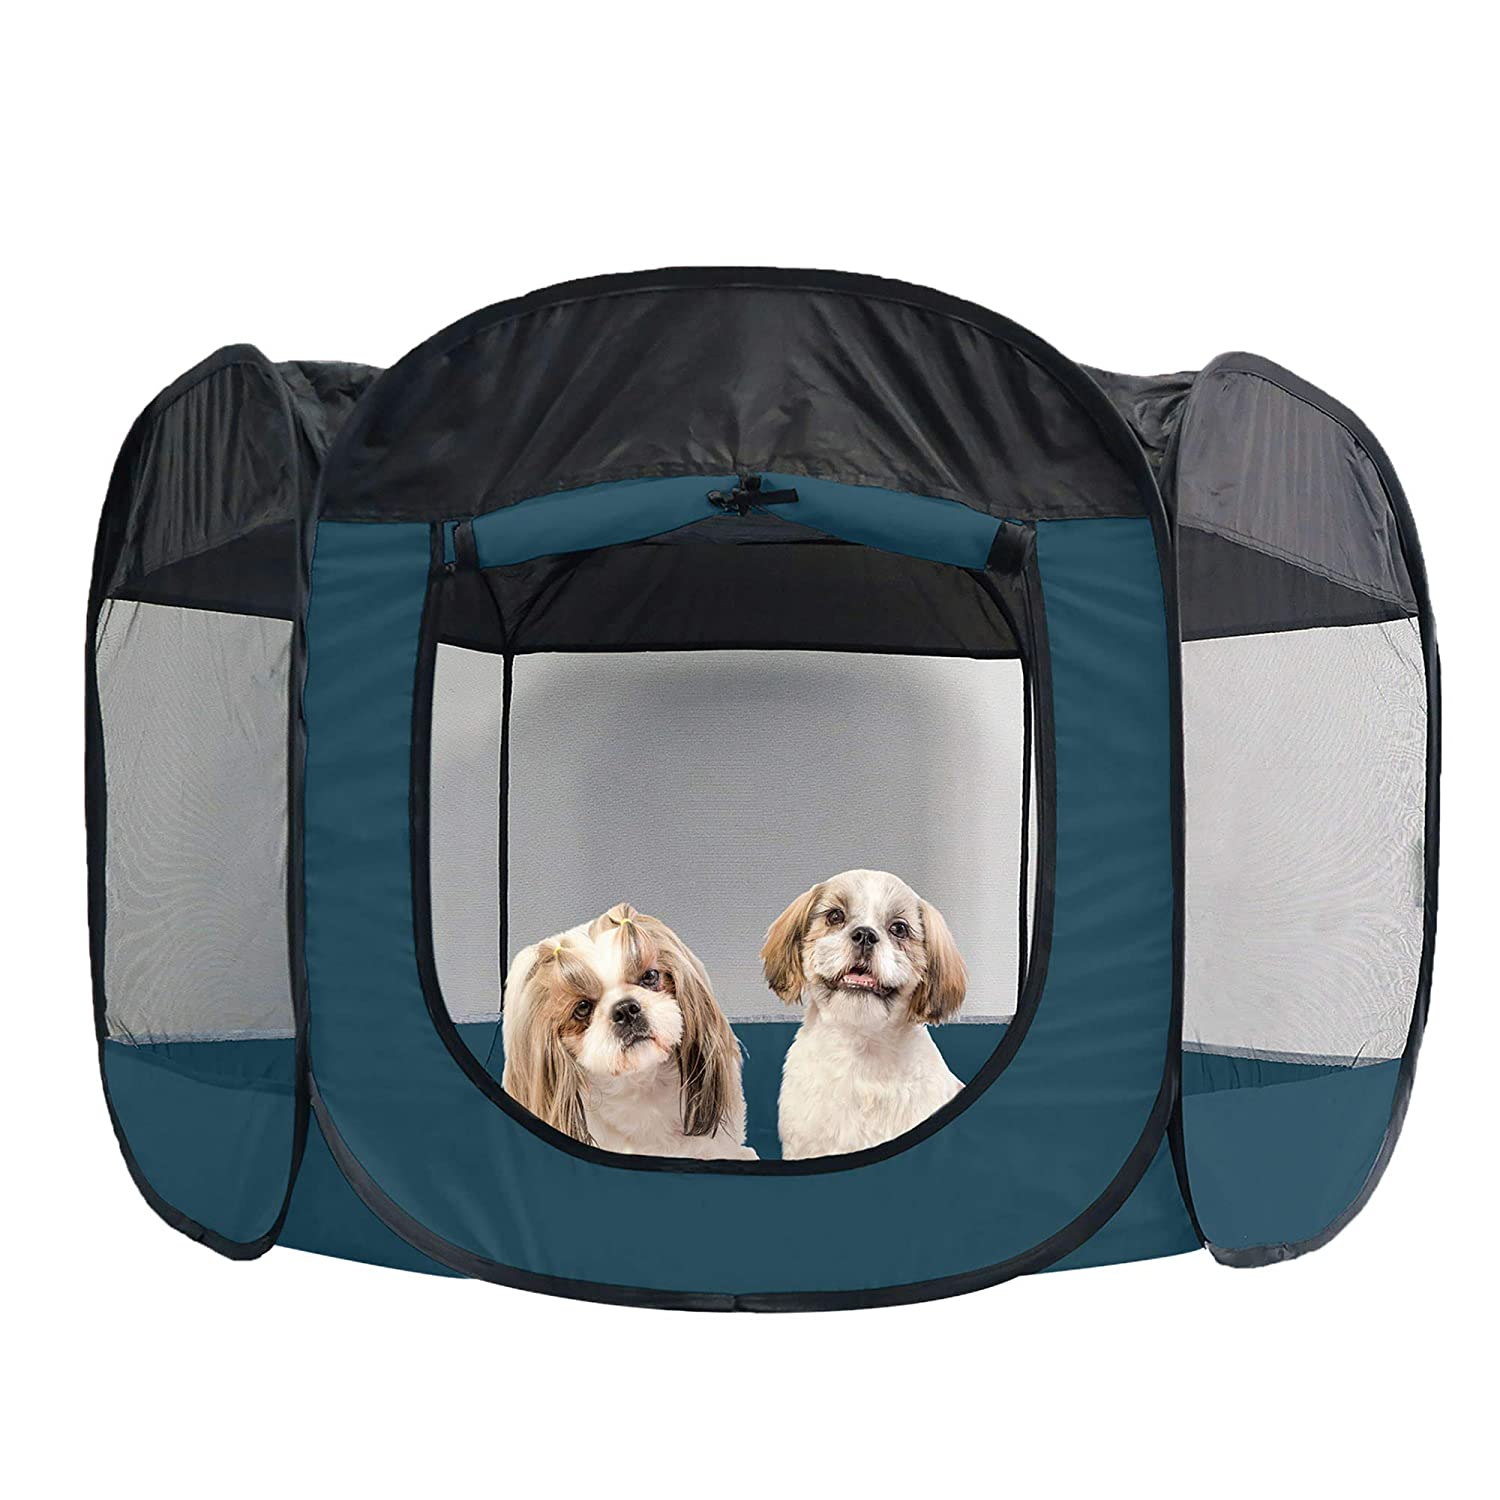 Furhaven Pet Playpen Indoor Outdoor Mesh Open Air Playpen And Exercise Pen Tent House Playground For Dogs And Cats Sailor Blue Extra Large Pet Supplies